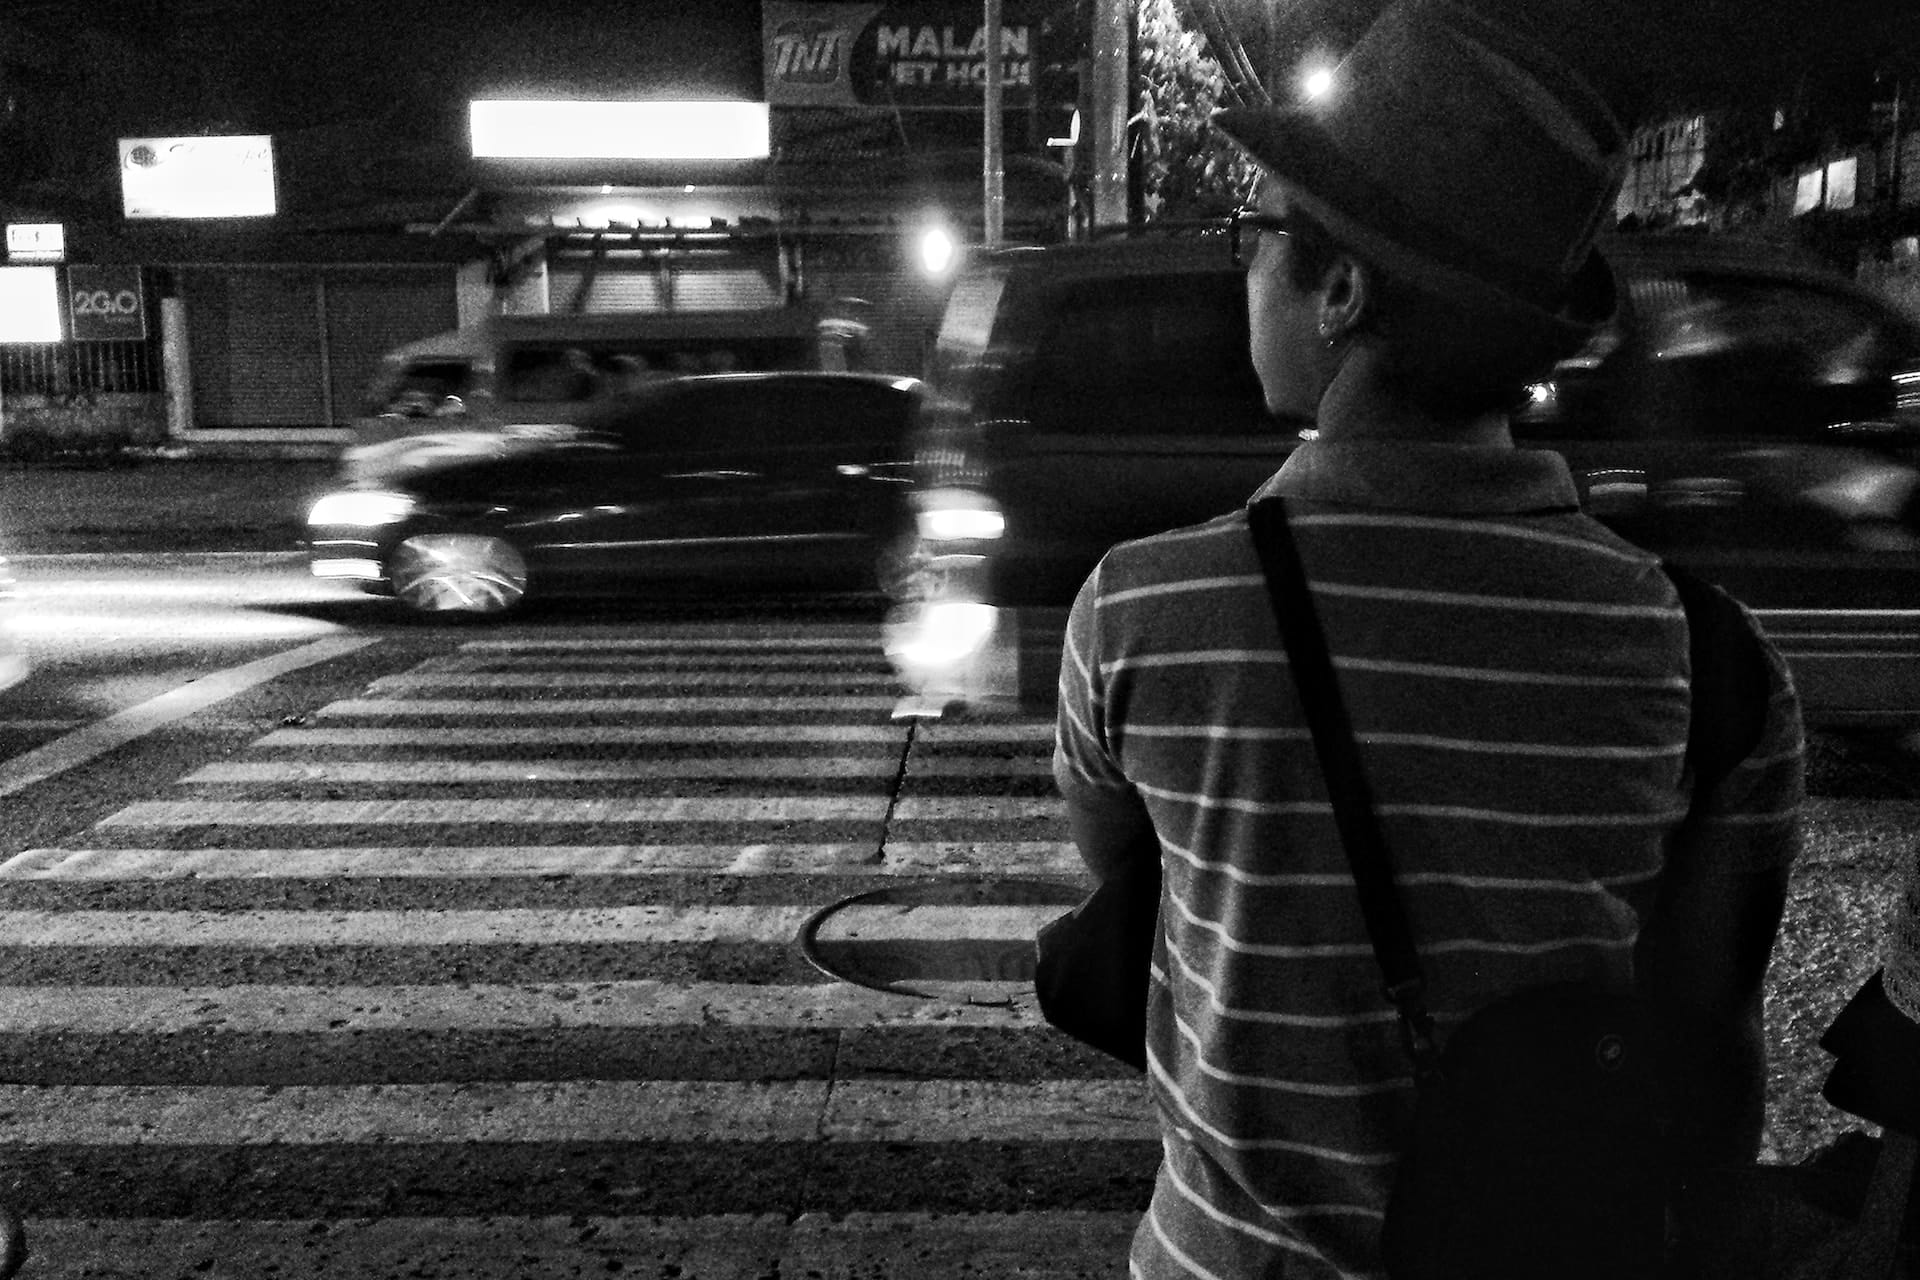 January 2017 Street Photography Contest Submissions - Zebra Crossings